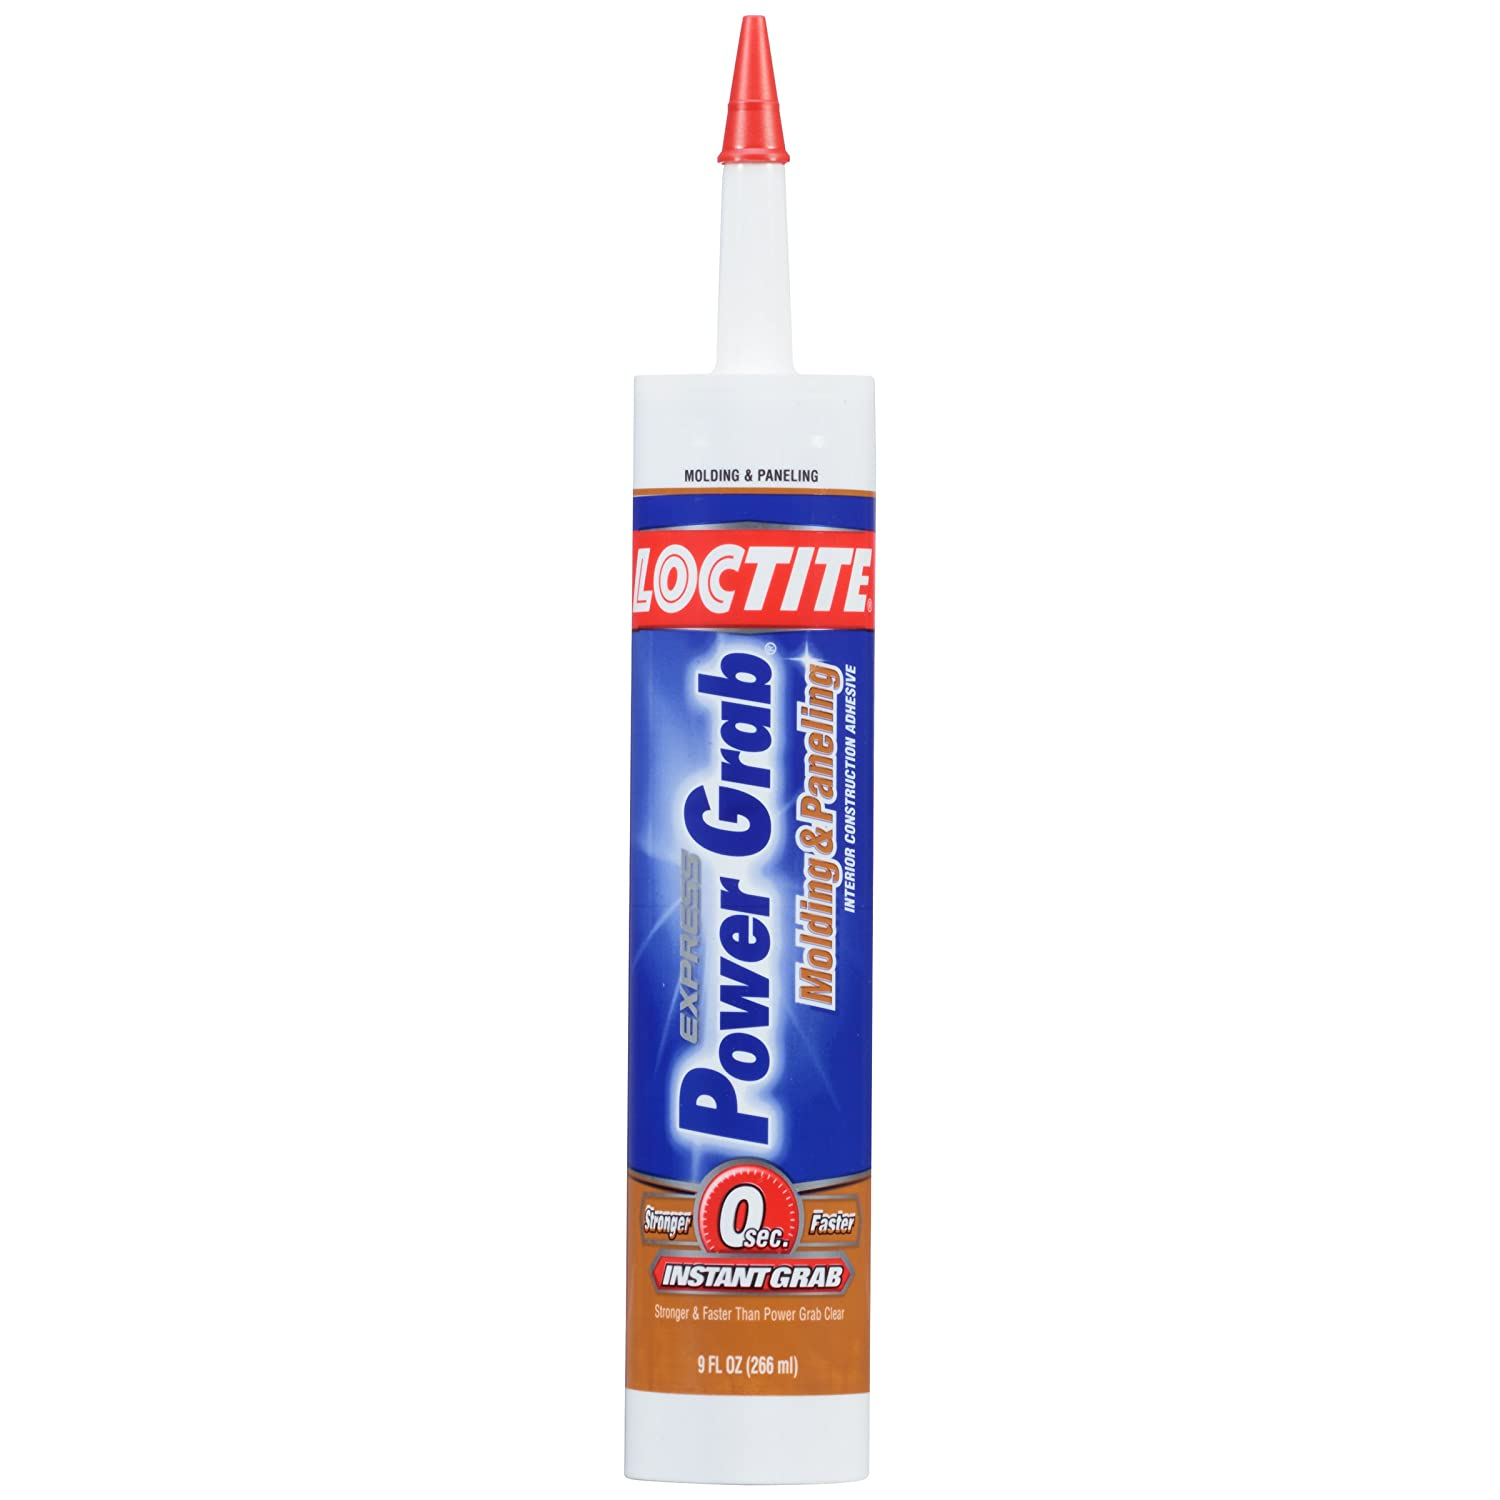 Loctite Power Grab Express Molding and Paneling Construction Adhesive White 9 Fl. Ounce Cartridge 12 Pack 2023759 12